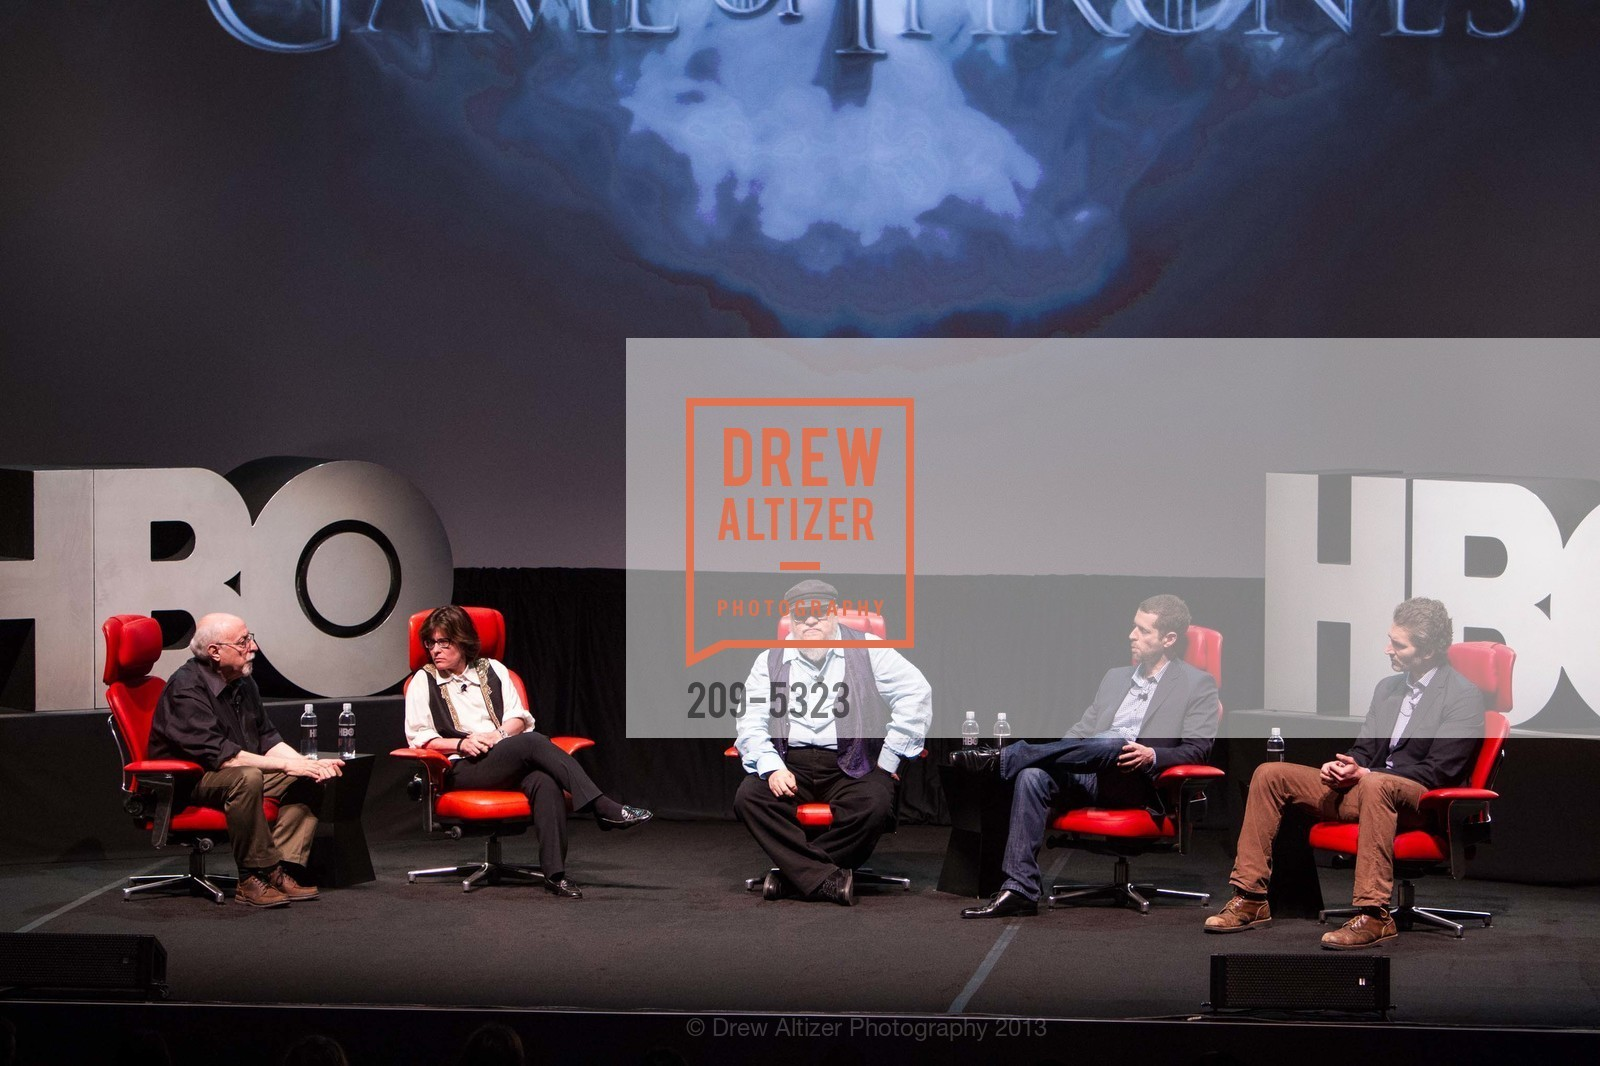 Walt Mossberg, Kara Swisher, George R.R. Martin, D.B. Weiss, David Benioff, Photo #209-5323